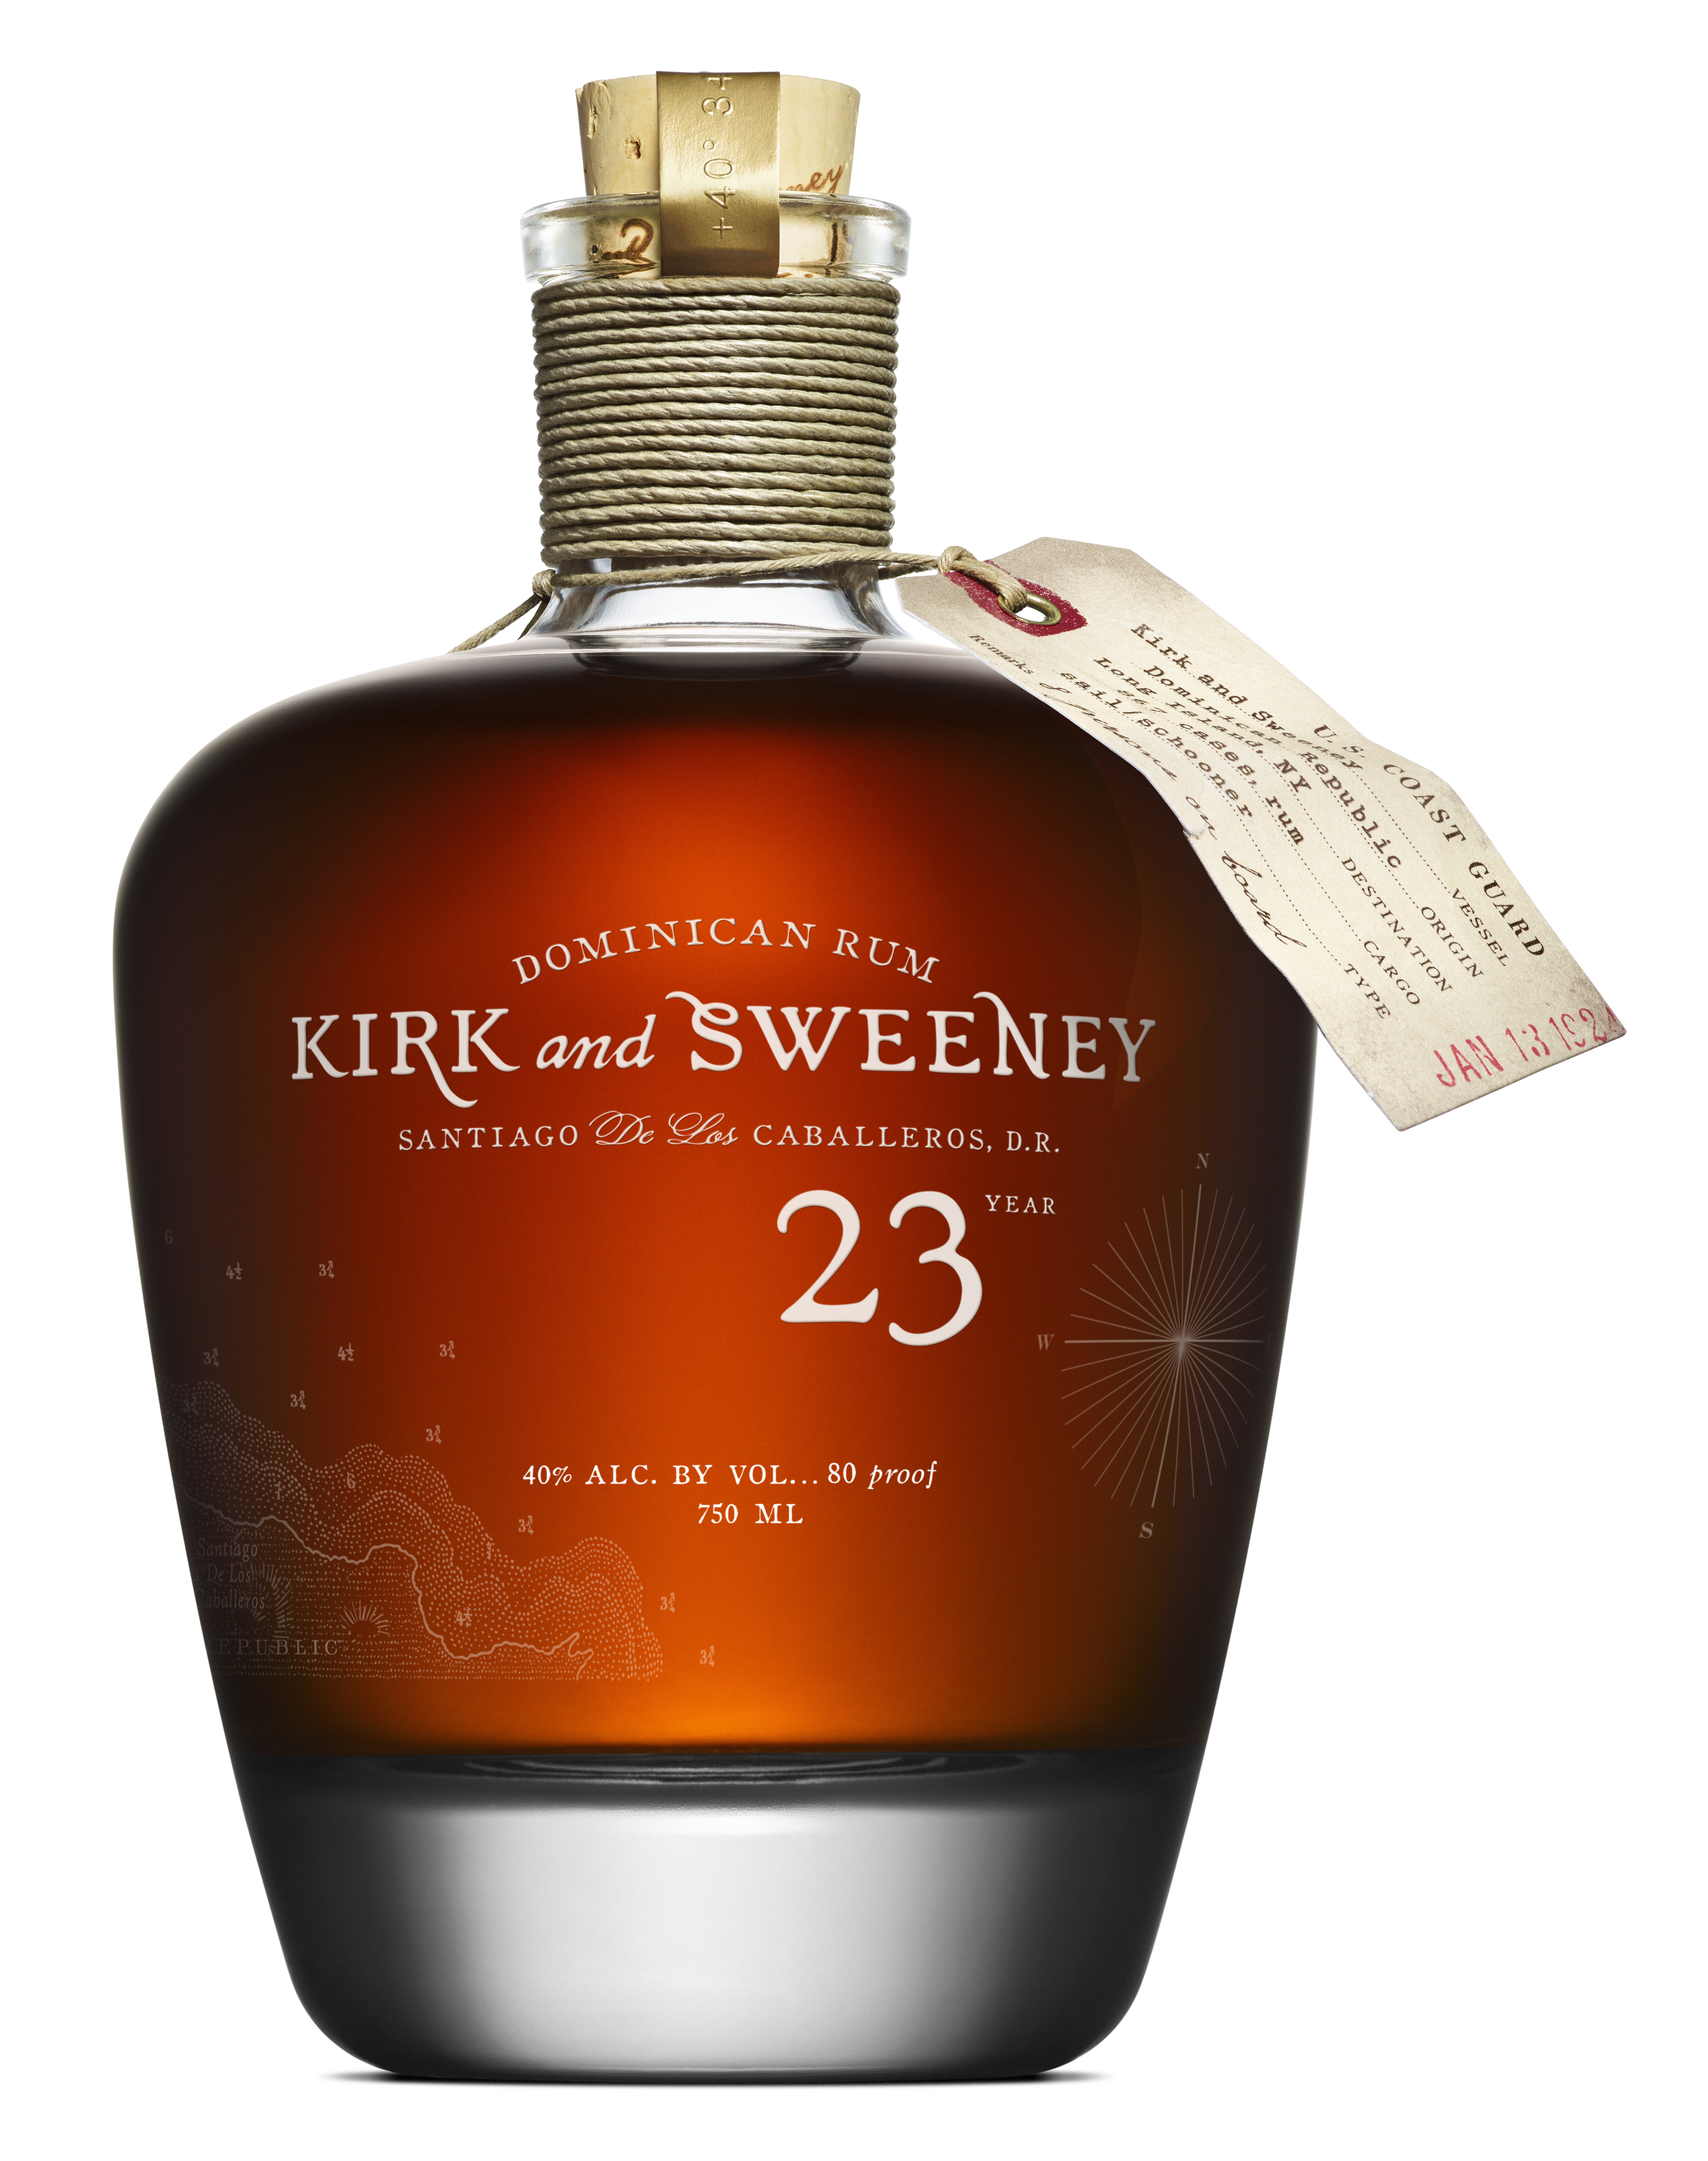 Kirk and Sweeney Dominican Rum 23 Years Old